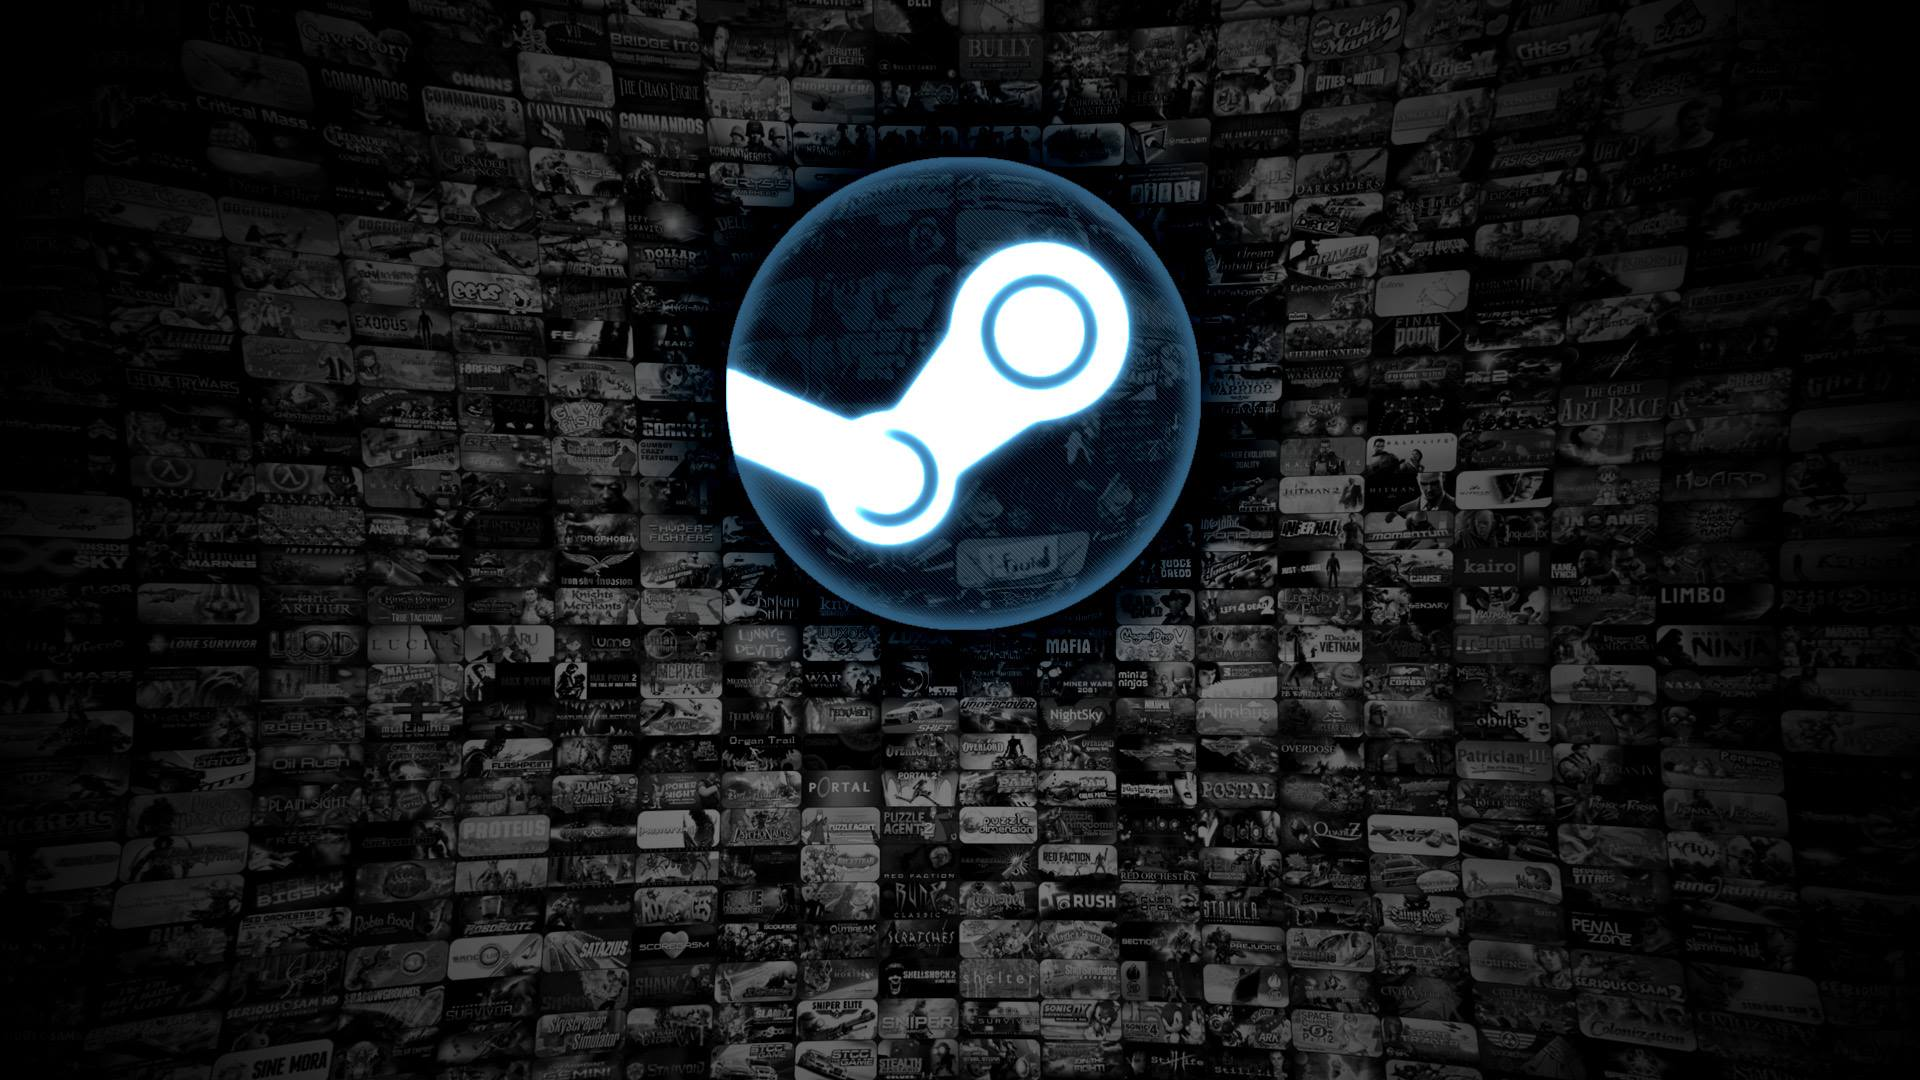 Steam unveils major updates to wishlist feature